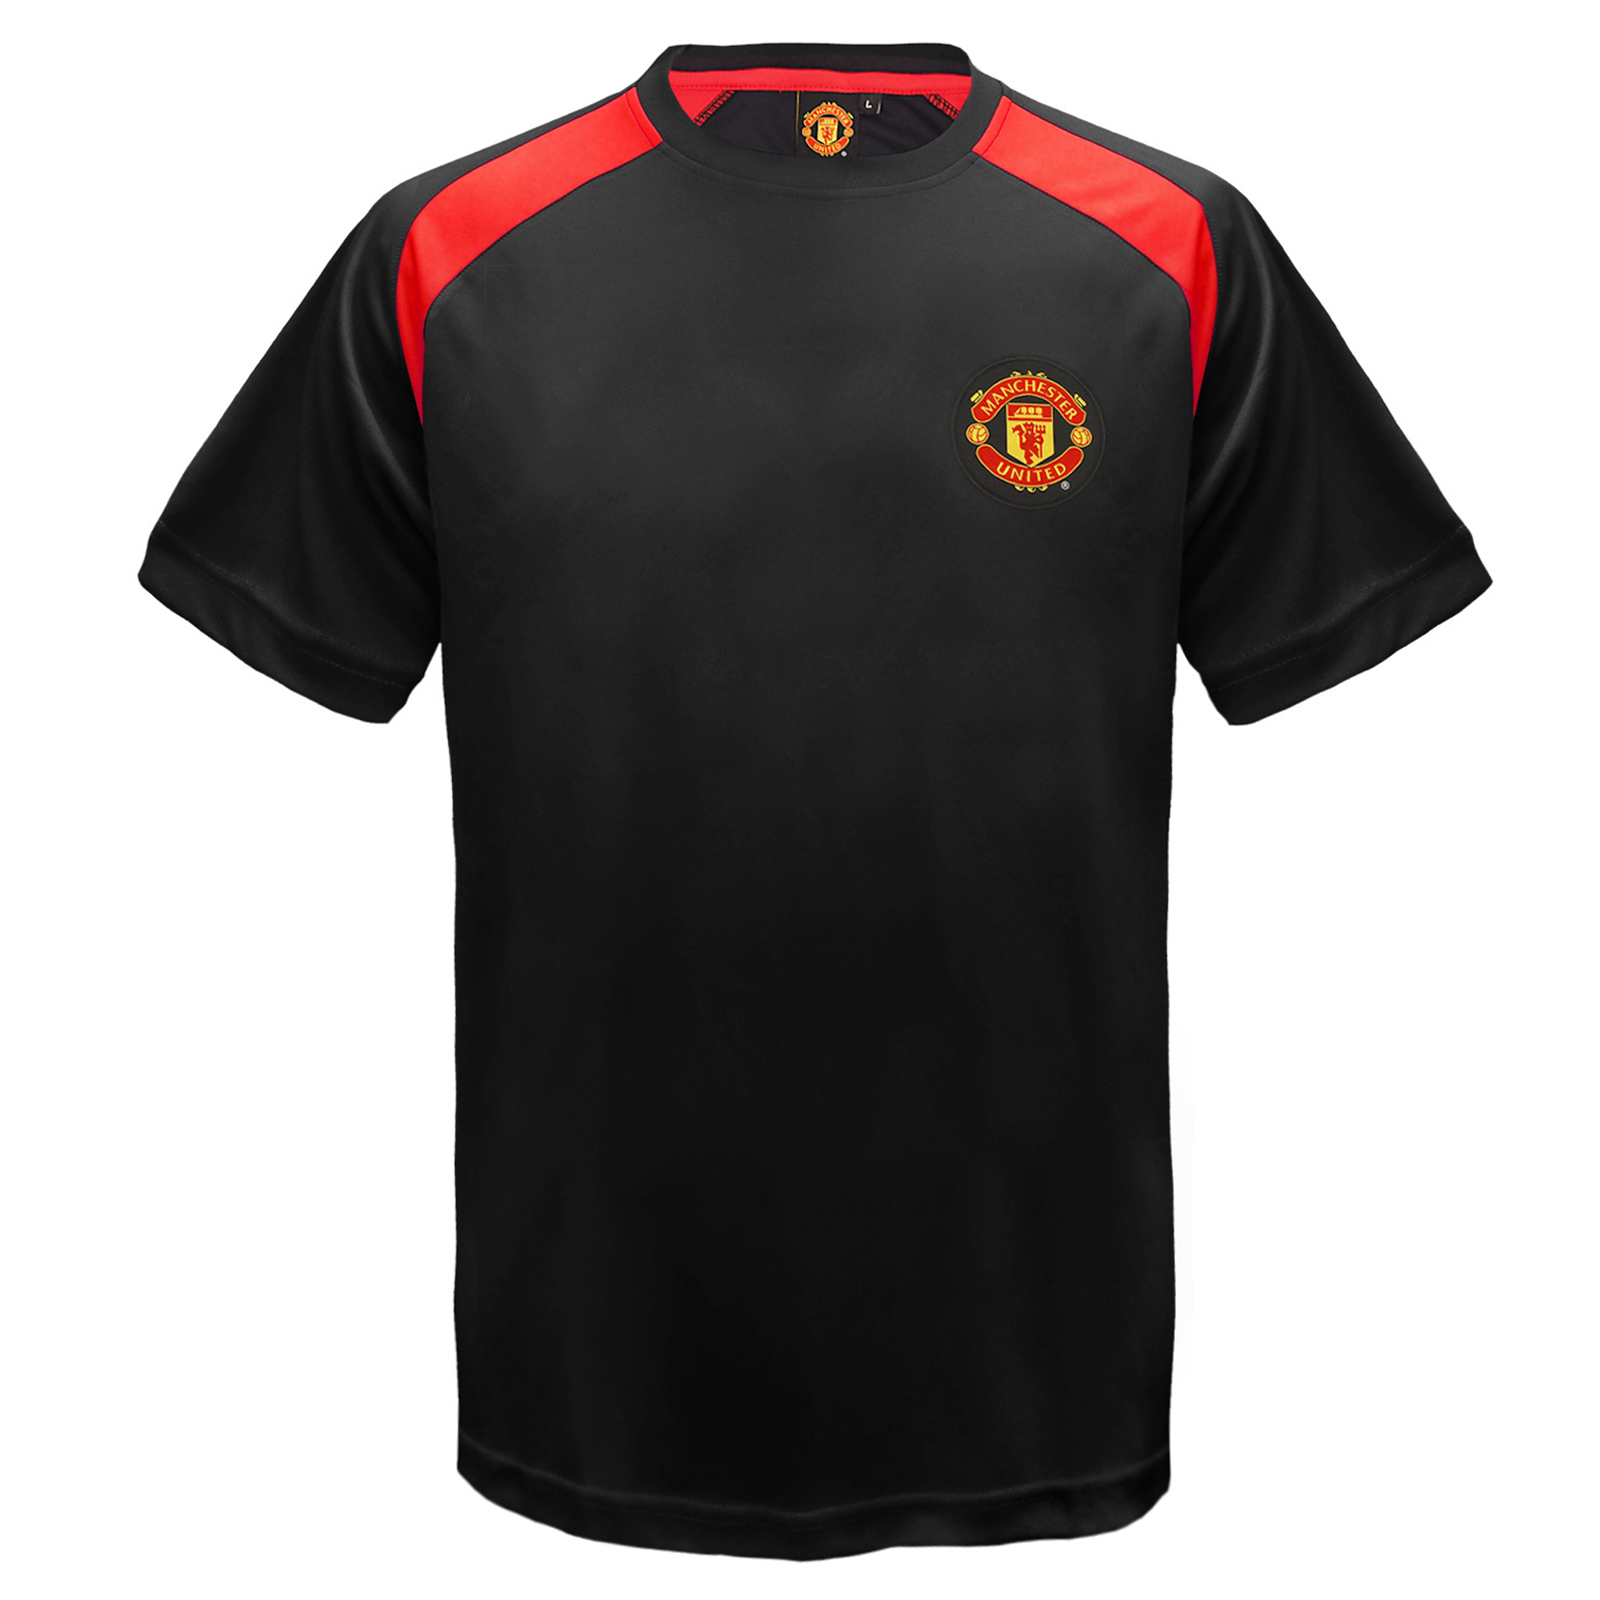 Find great deals on eBay for boys football shirts. Shop with confidence.